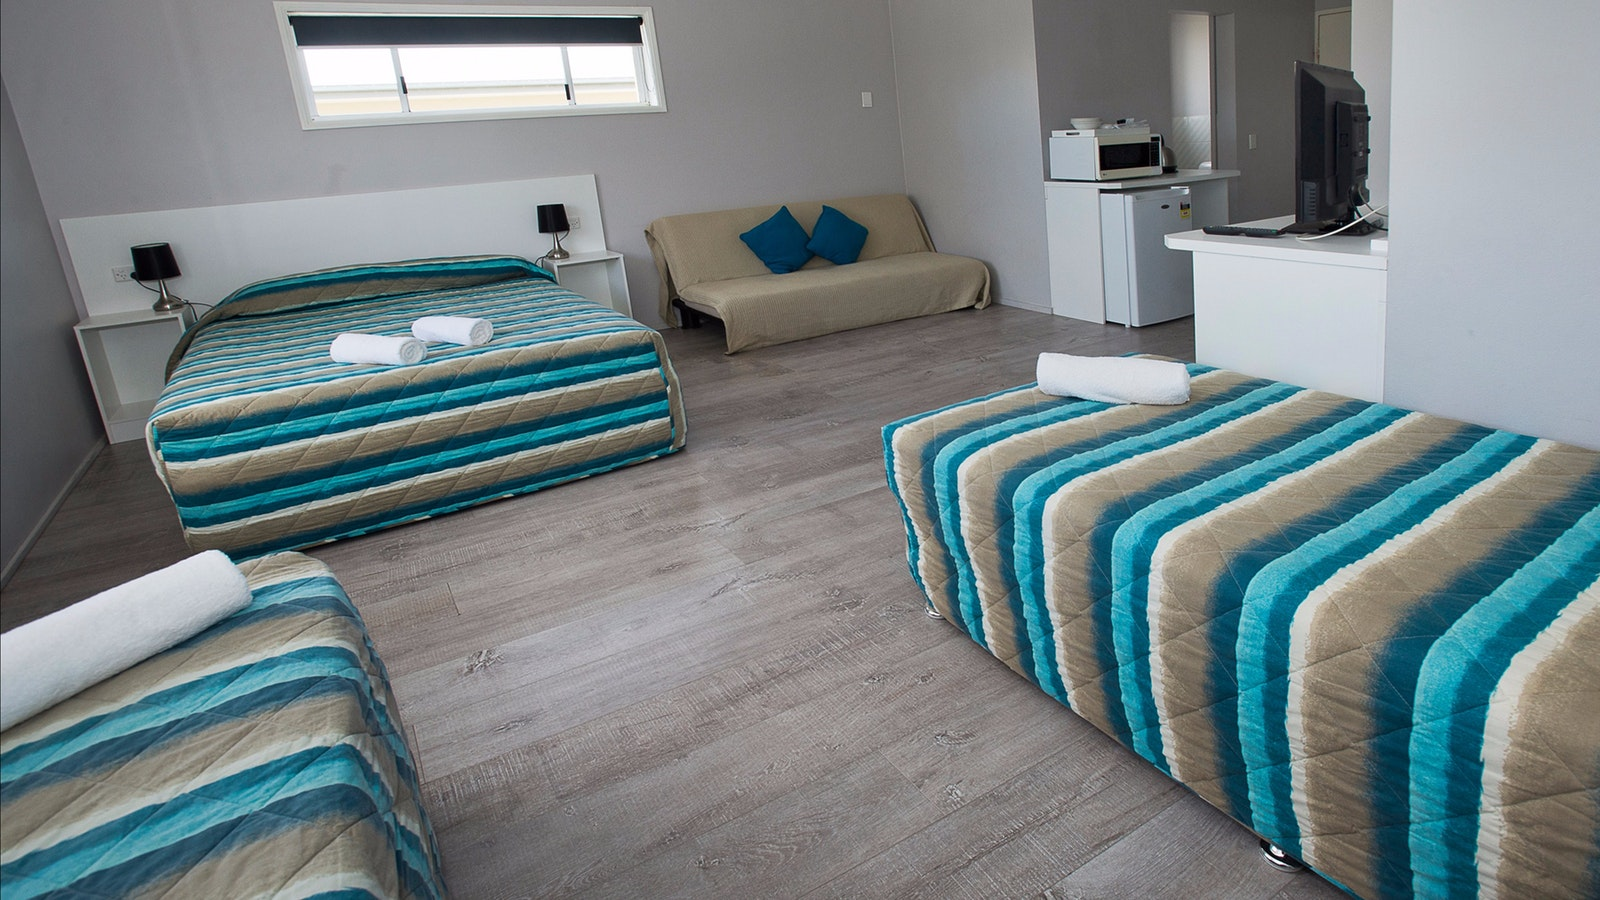 Bureligh miami family big clean affordable location beach